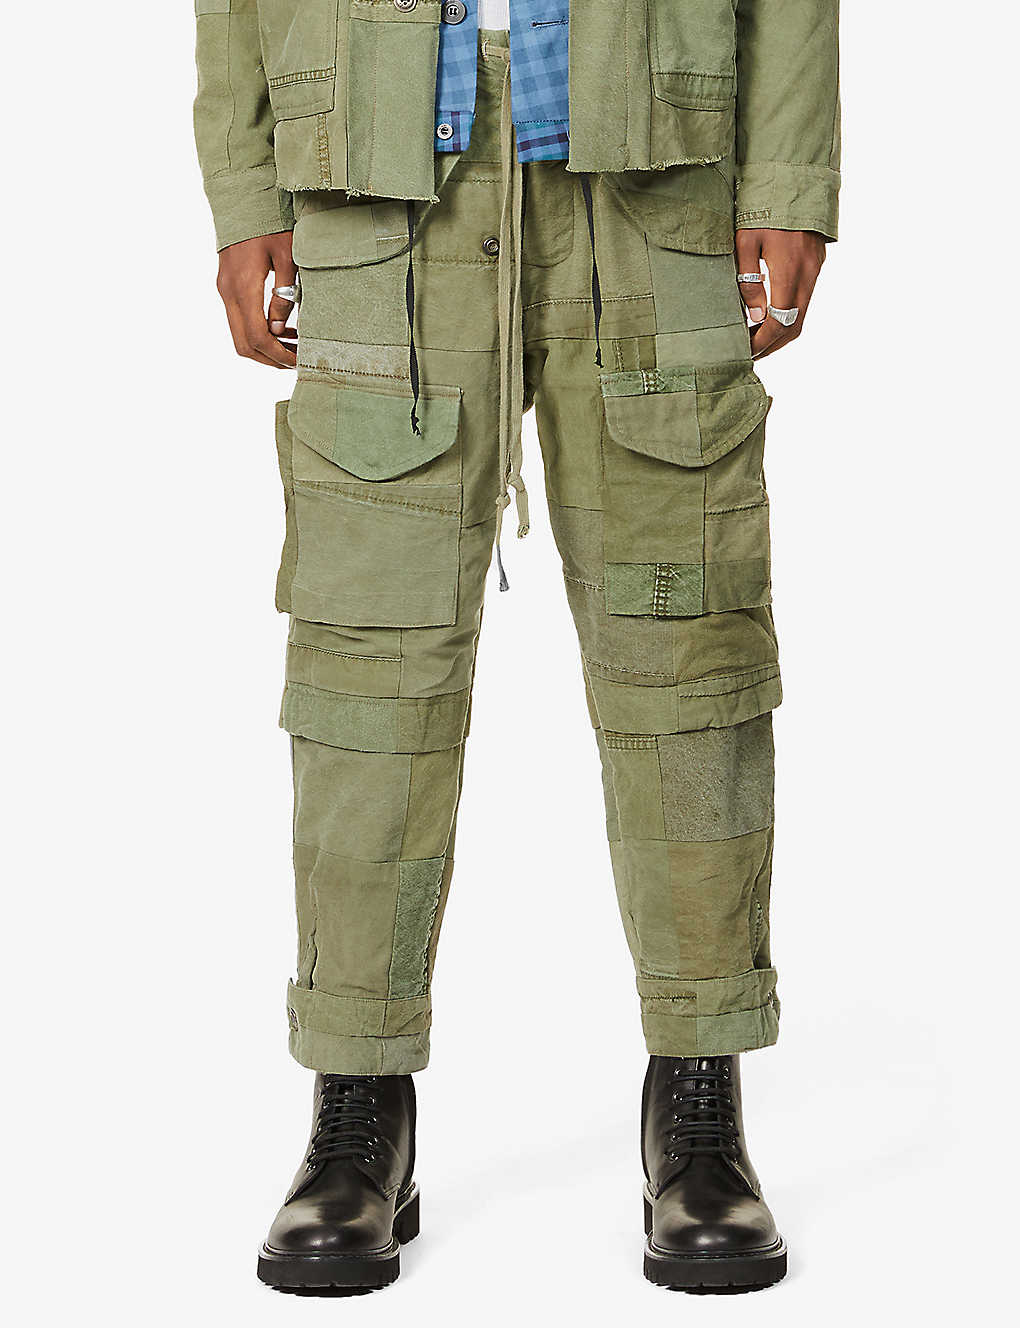 GREG LAUREN: SCRAPWORK Tent tapered cotton trousers